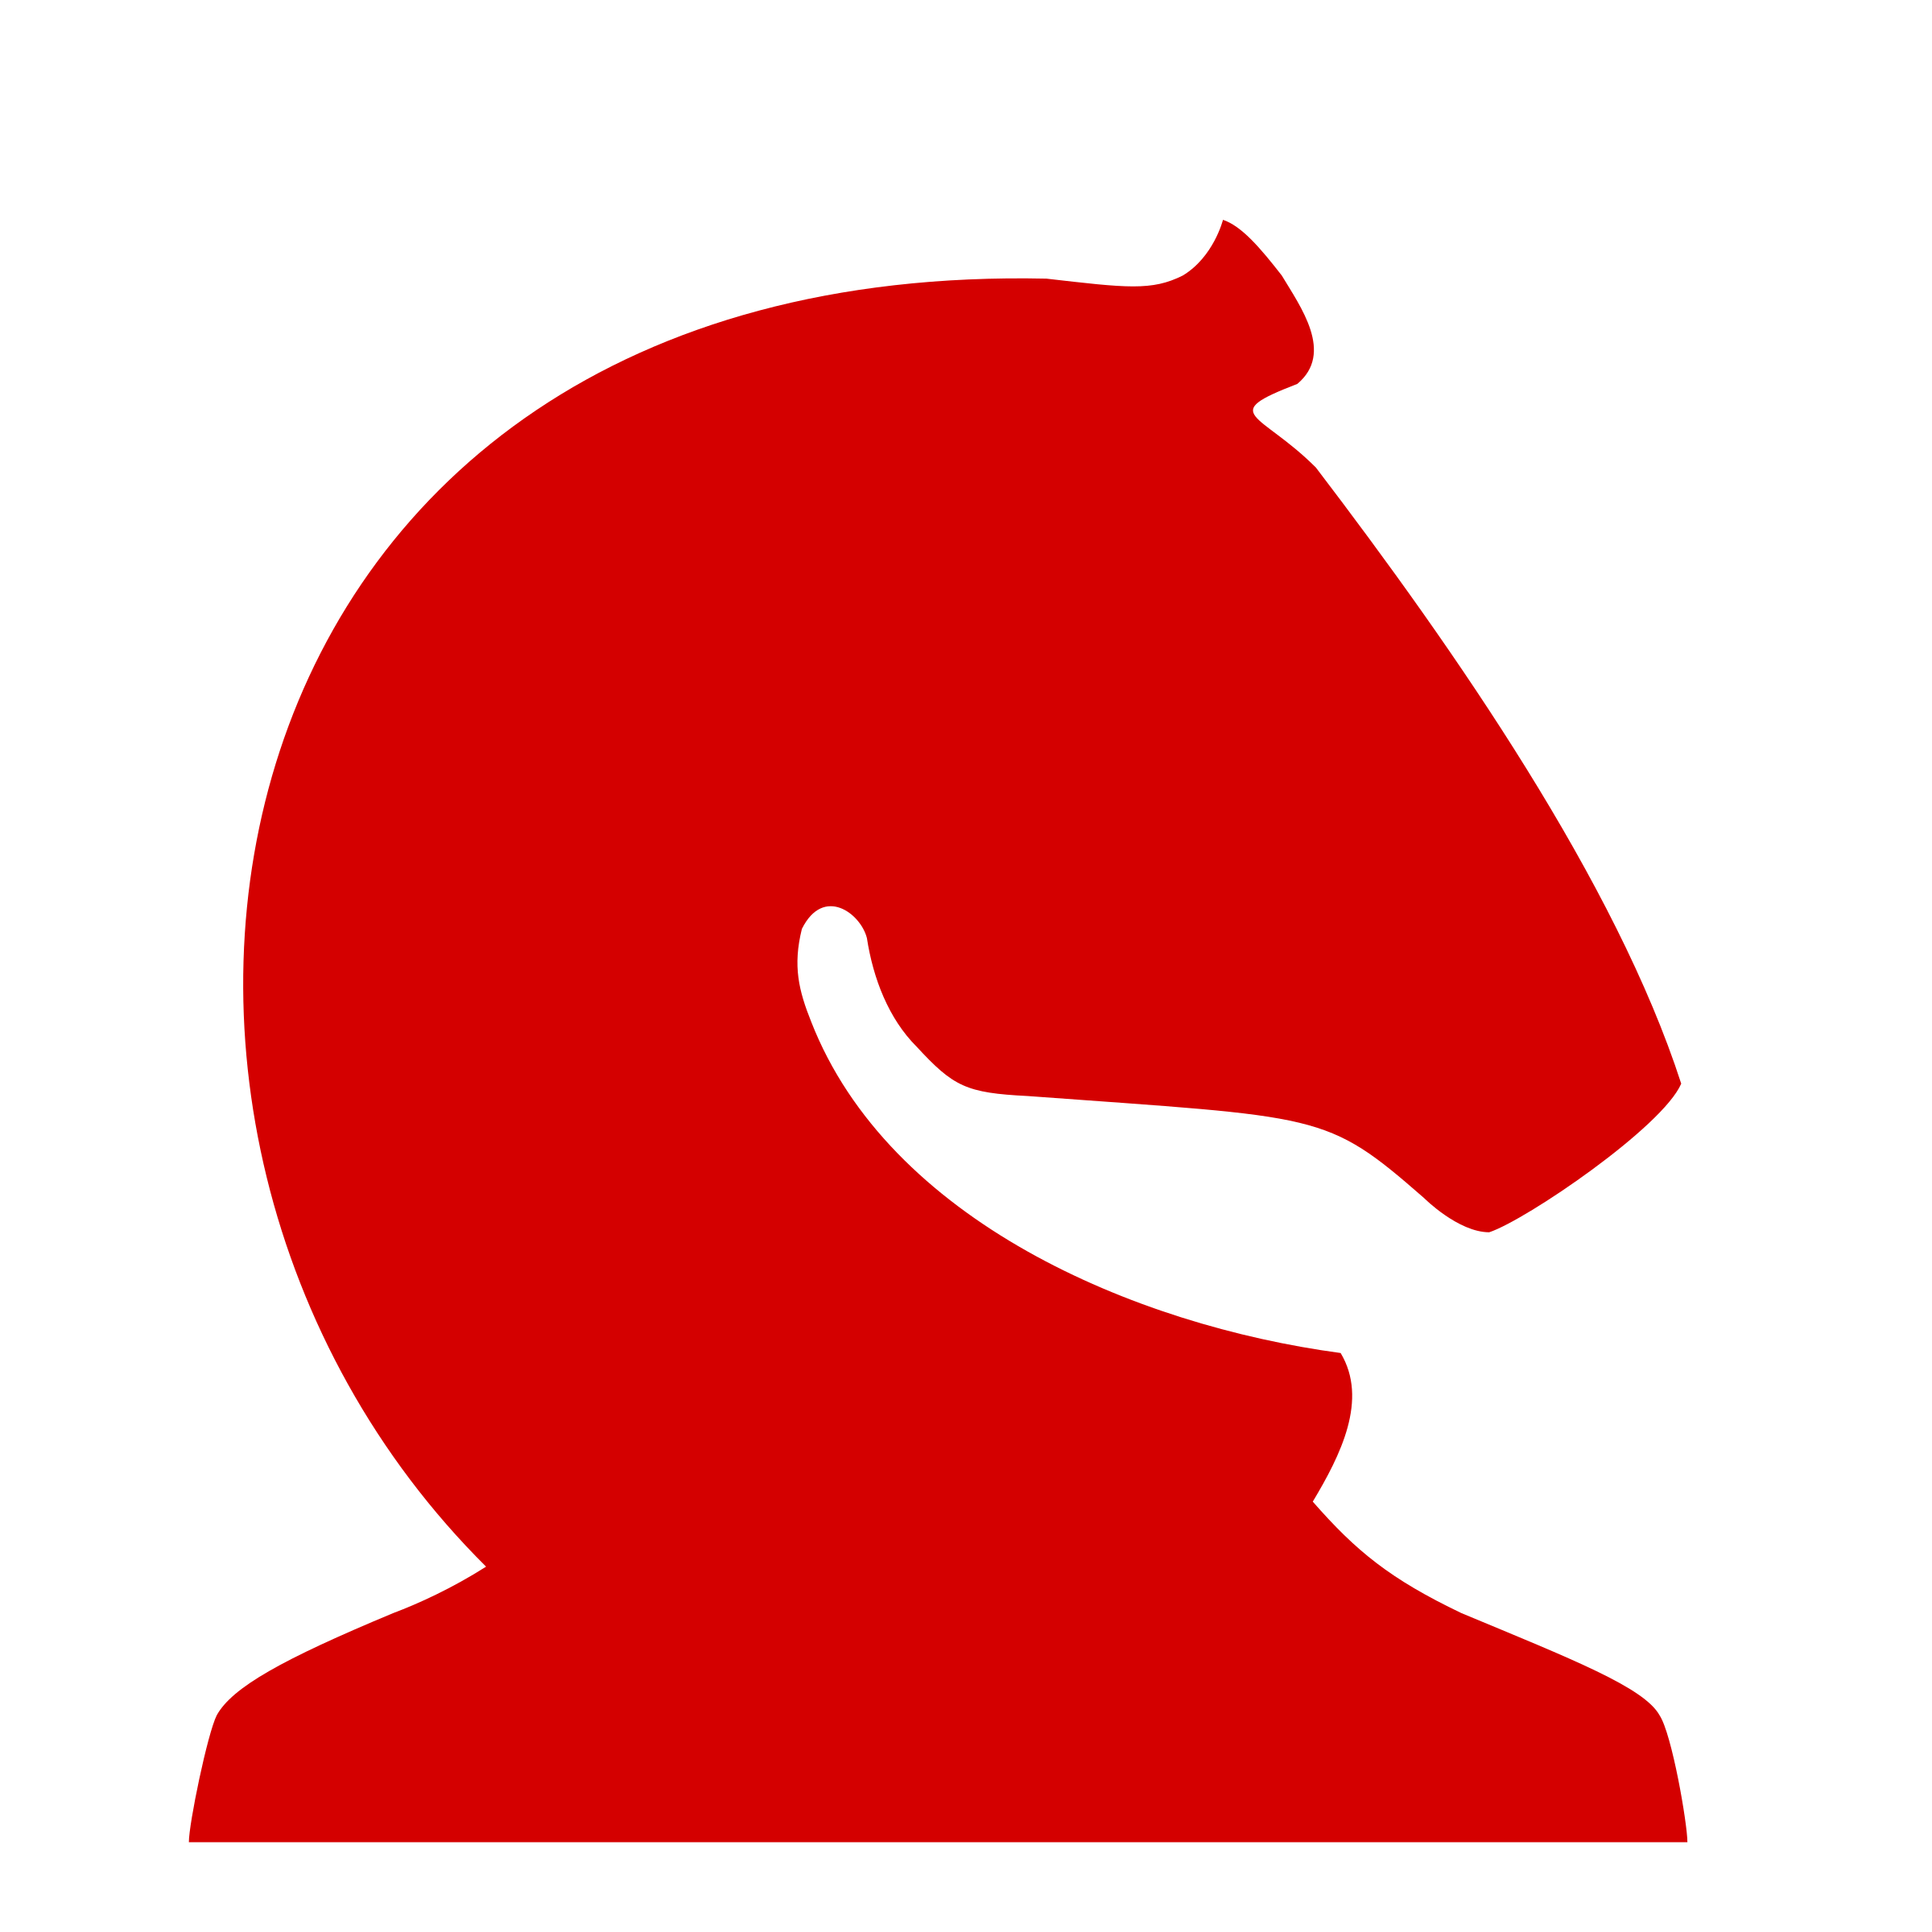 Chess Piece Silhouette - Red Knight / Caballo Rojo by DG-RA